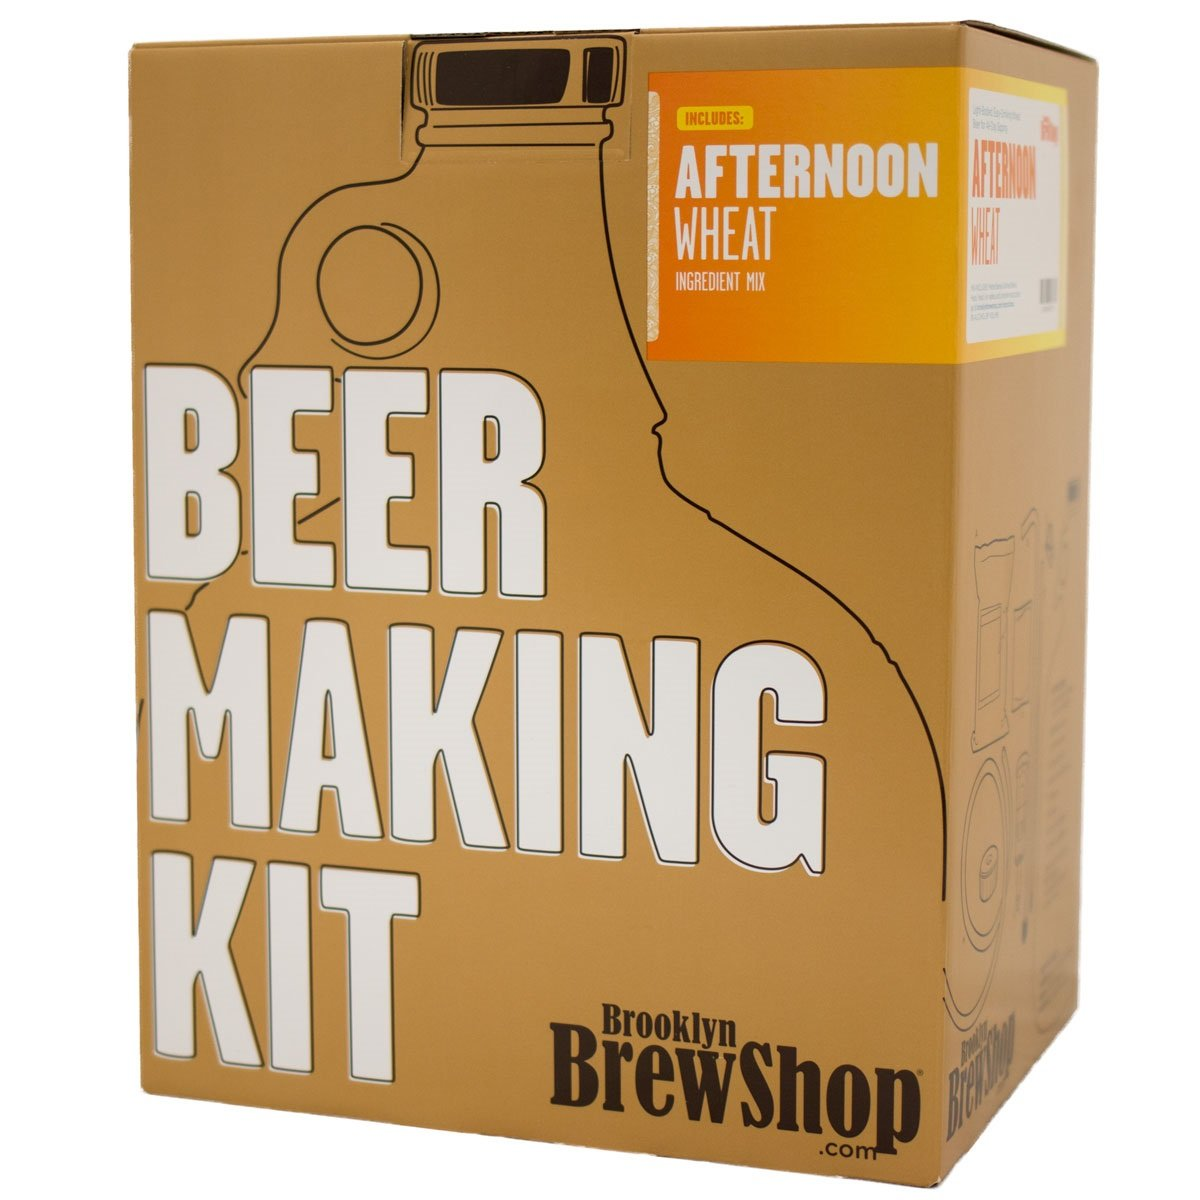 Brooklyn Brew Shop - Beer Making Kit Afternoon Wheat GKAFW